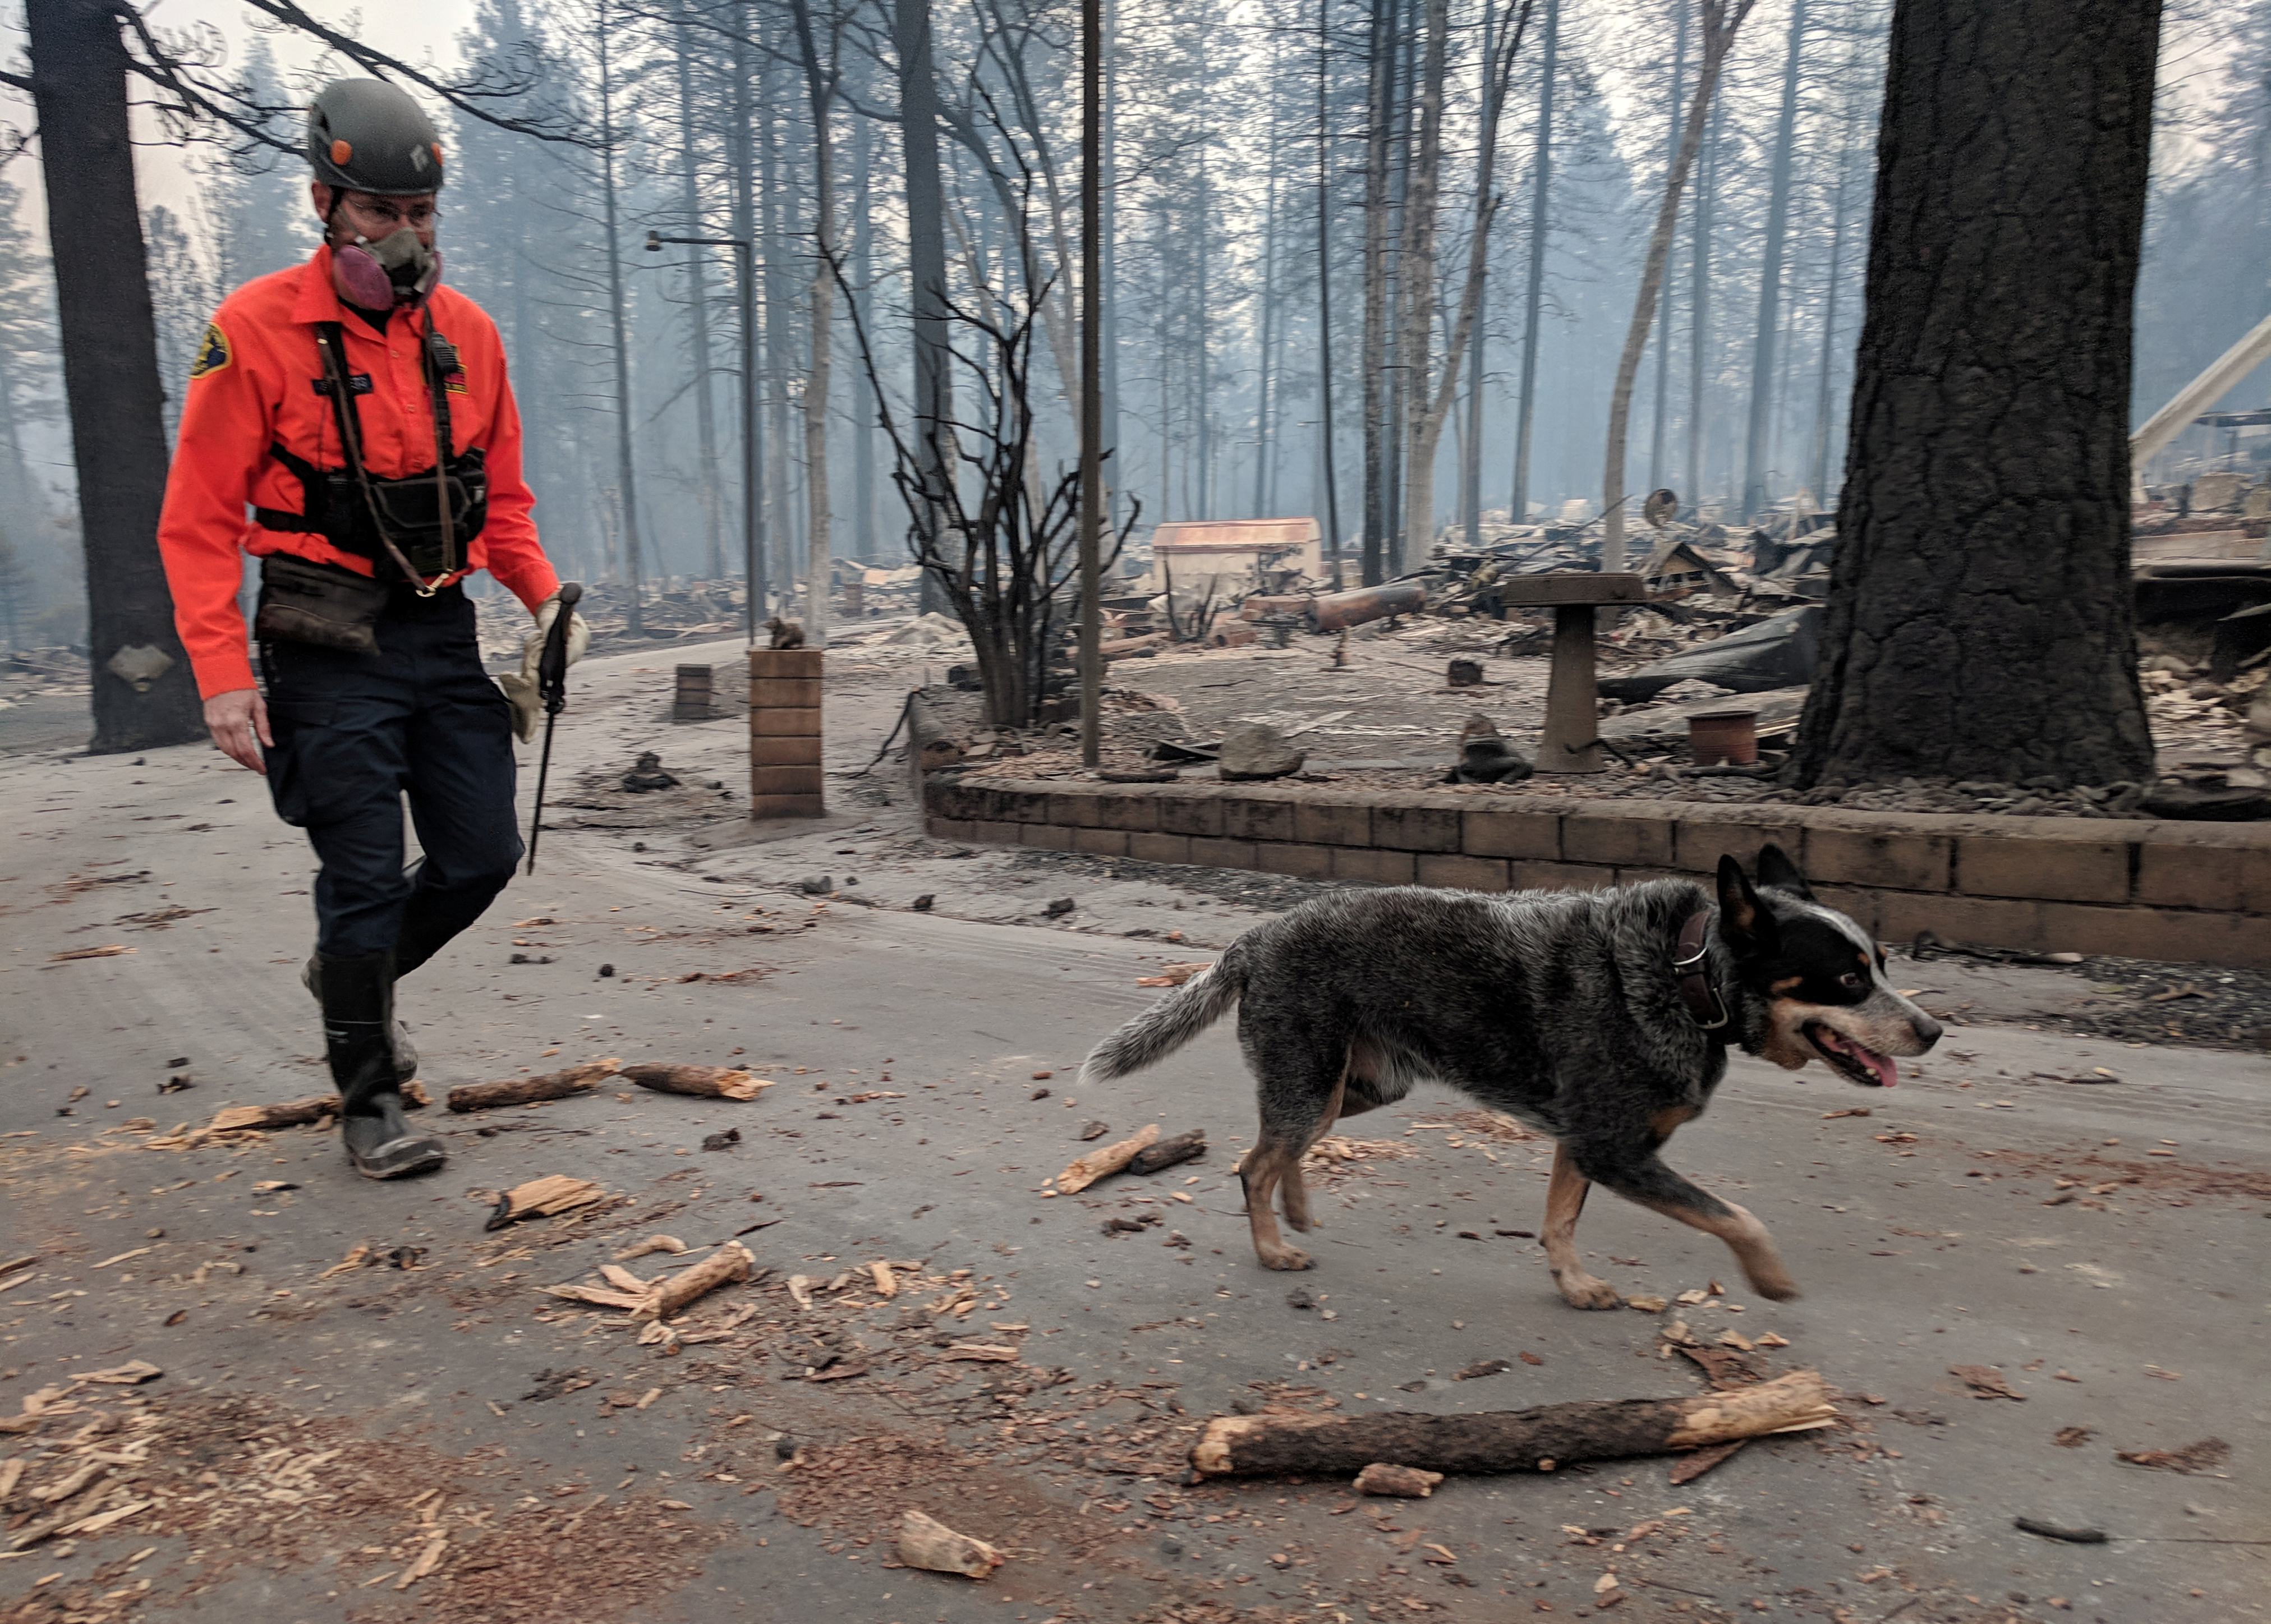 A cadaver dog and his handler search for victims in a burnt-out residential street ravaged by the Camp Fire in Paradise, California, Nov. 13, 2018.